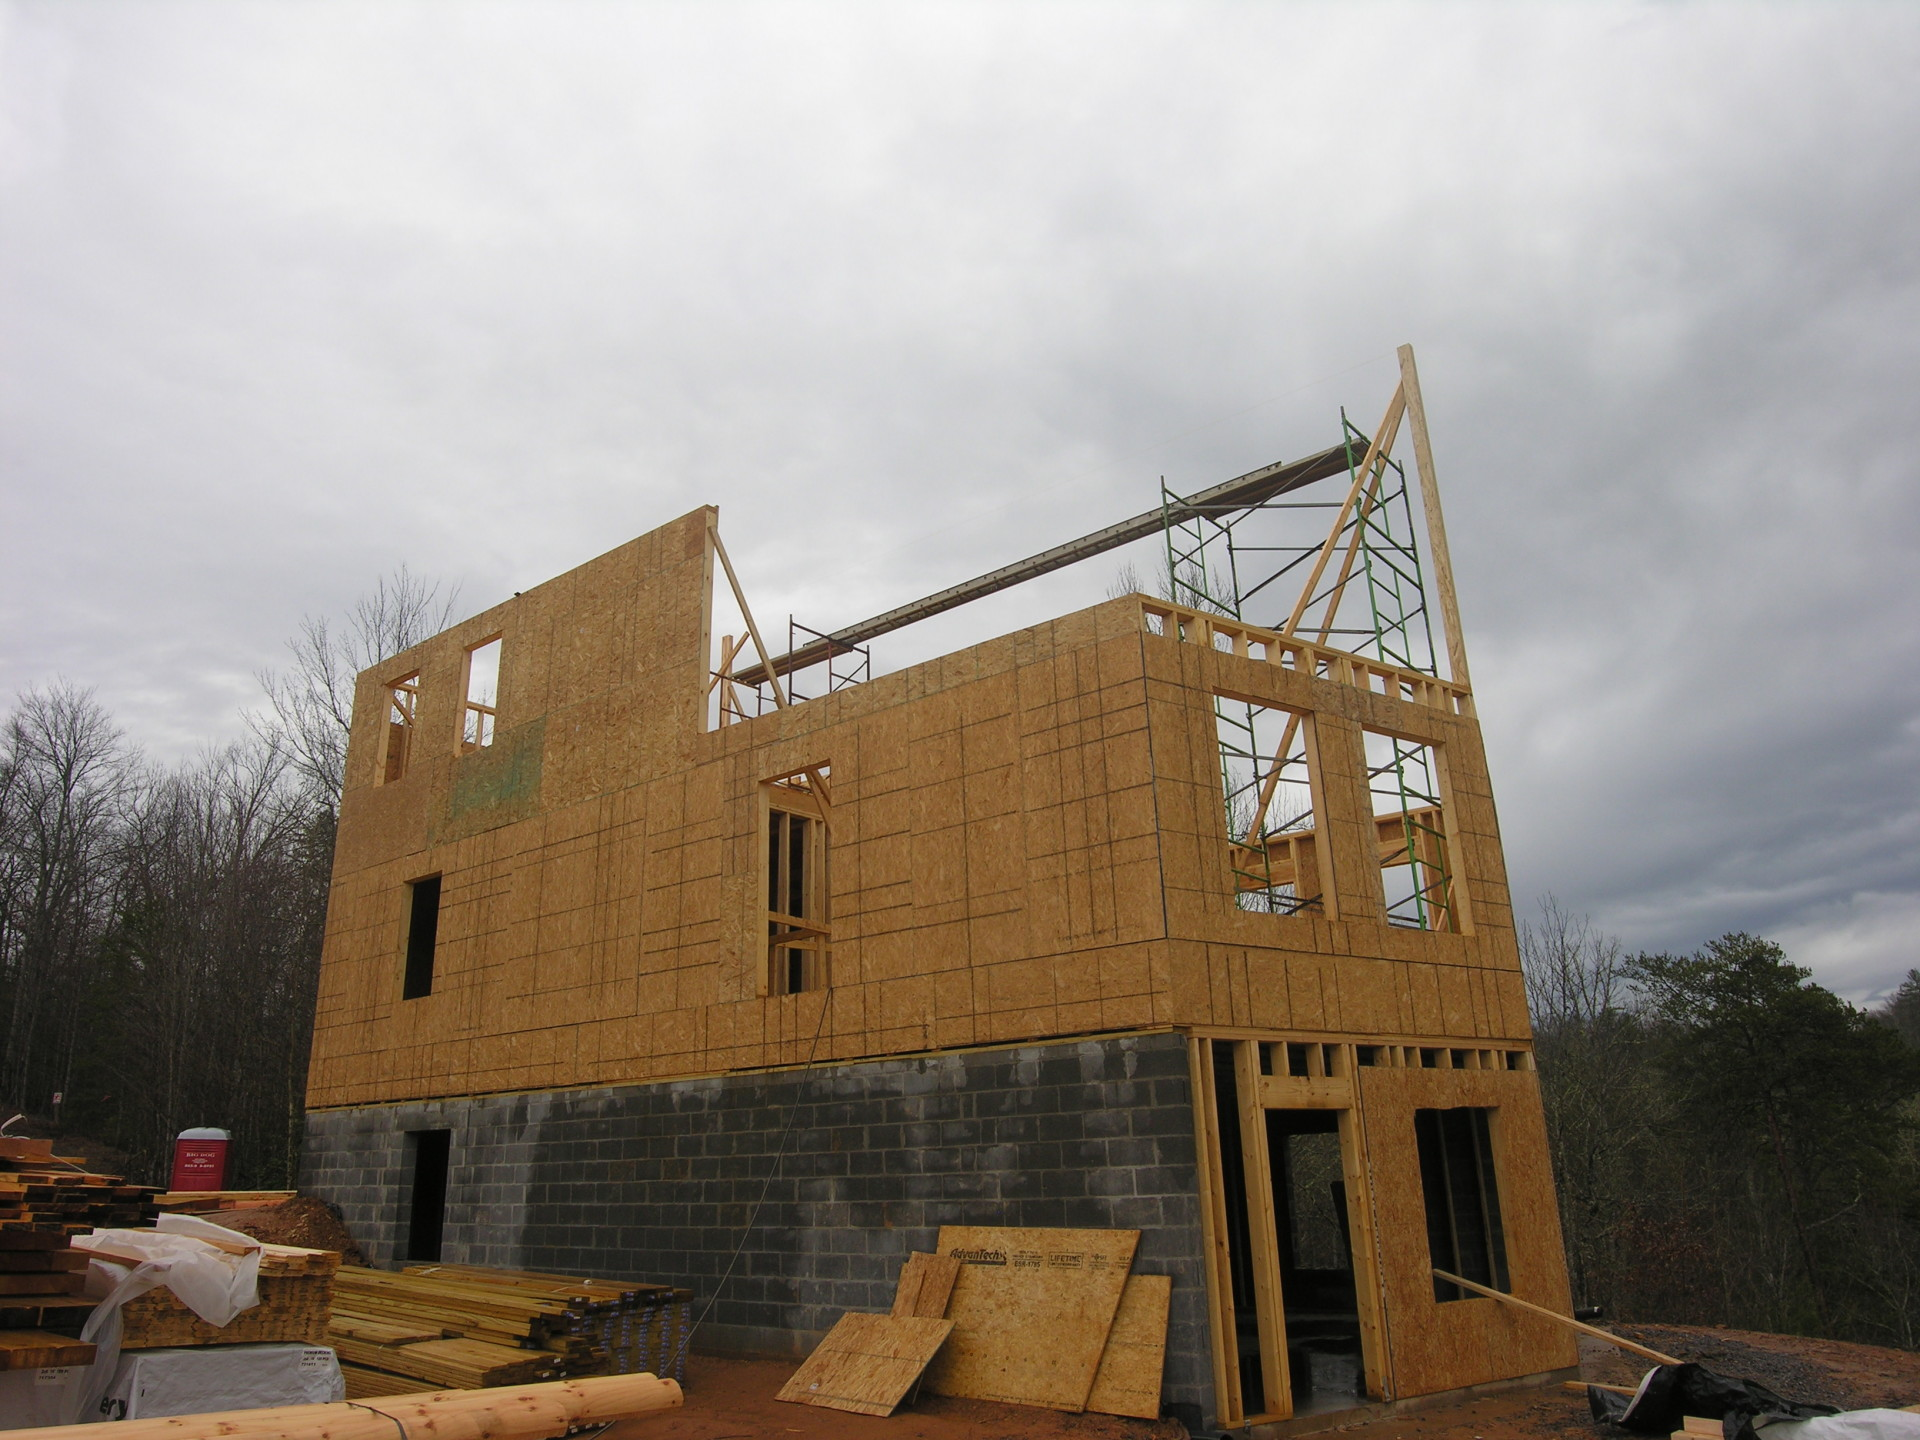 Ridge View Lodge 2nd floor being framed; getting ready to hoist the ridge beam